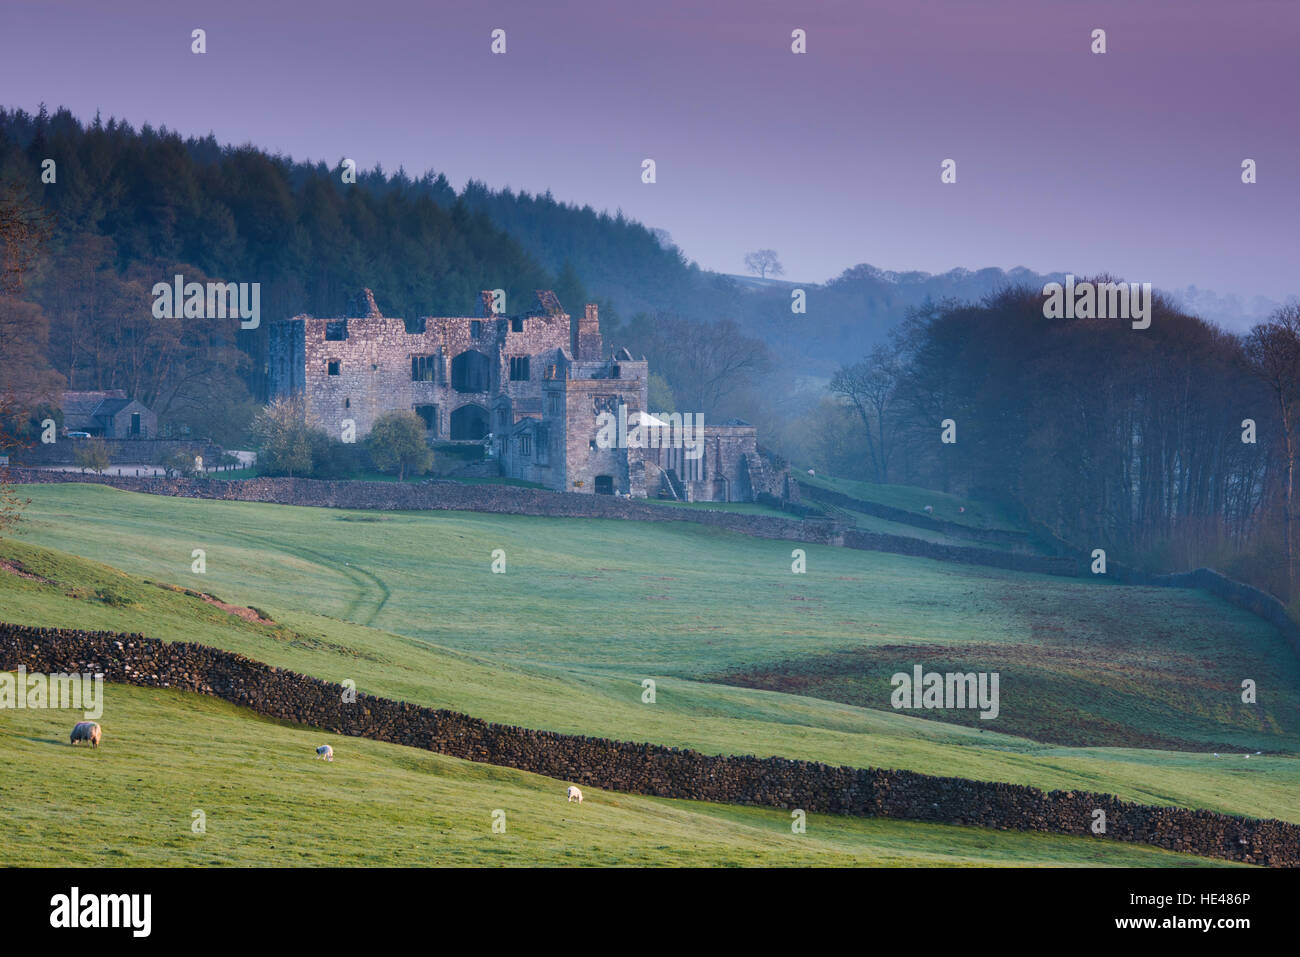 Pink winter sunrise sky & beautiful historic ancient sunlit Barden Tower ruins - scenic Dales countryside, Bolton Abbey Estate, Yorkshire, England GB. Stock Photo